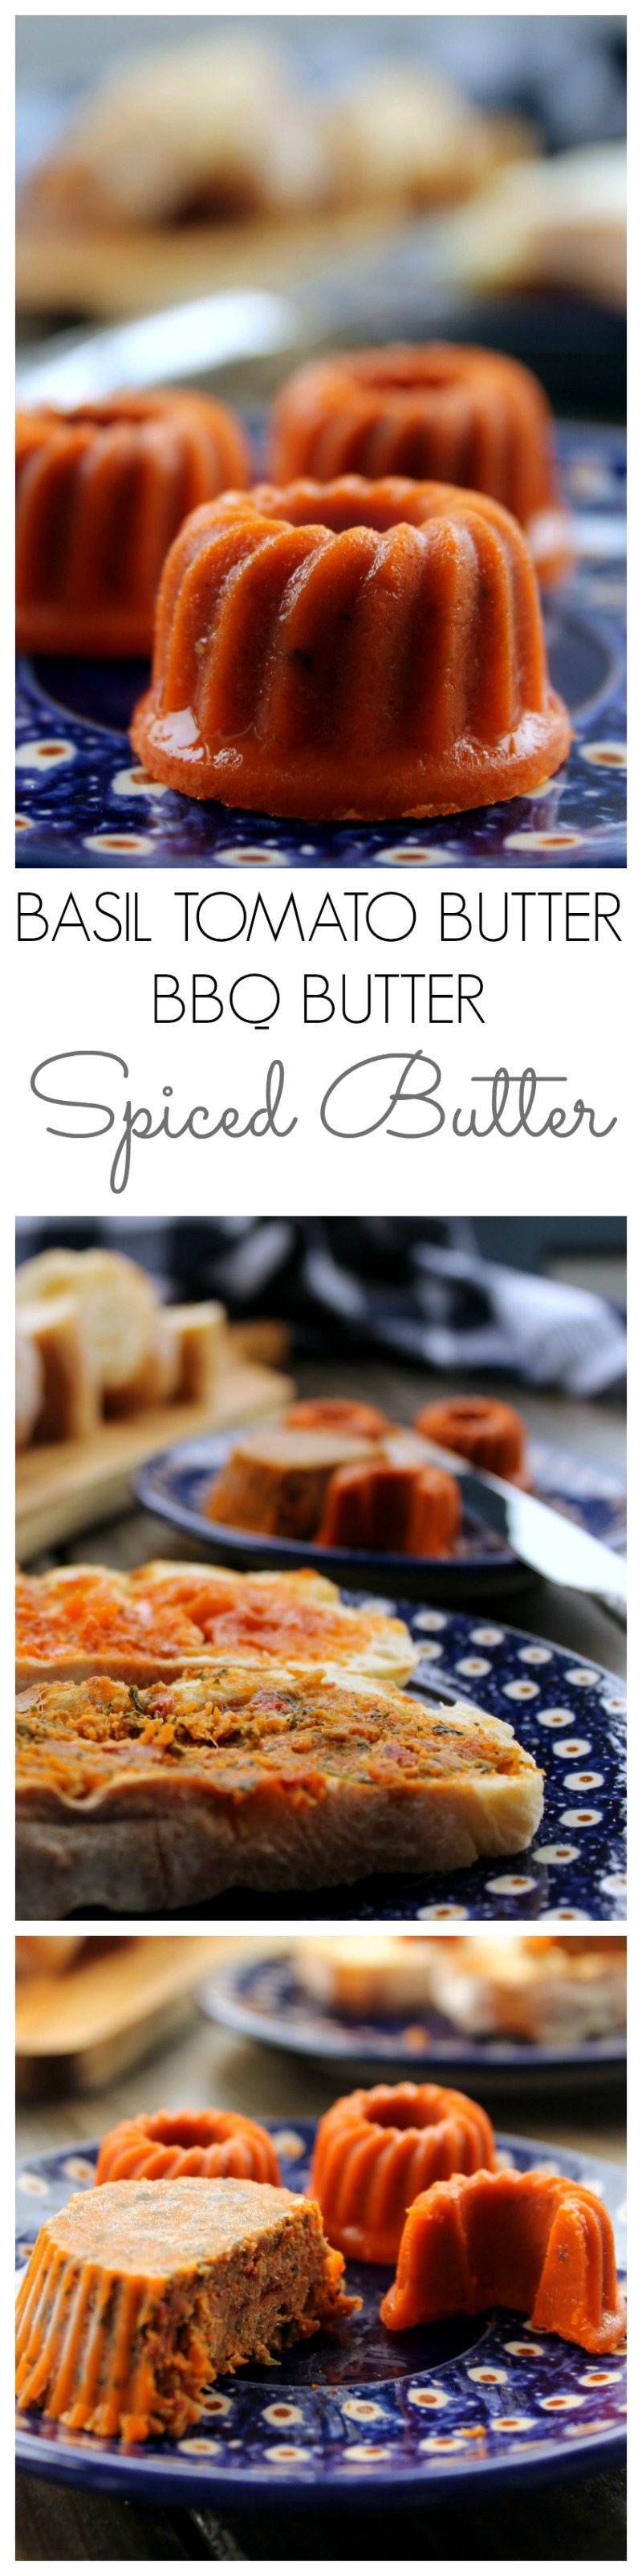 Two spiced butter recipes that can be whipped up in 5 min and bring every sandwich, veggie or piece of meat to the next level! Spicy and delicious!